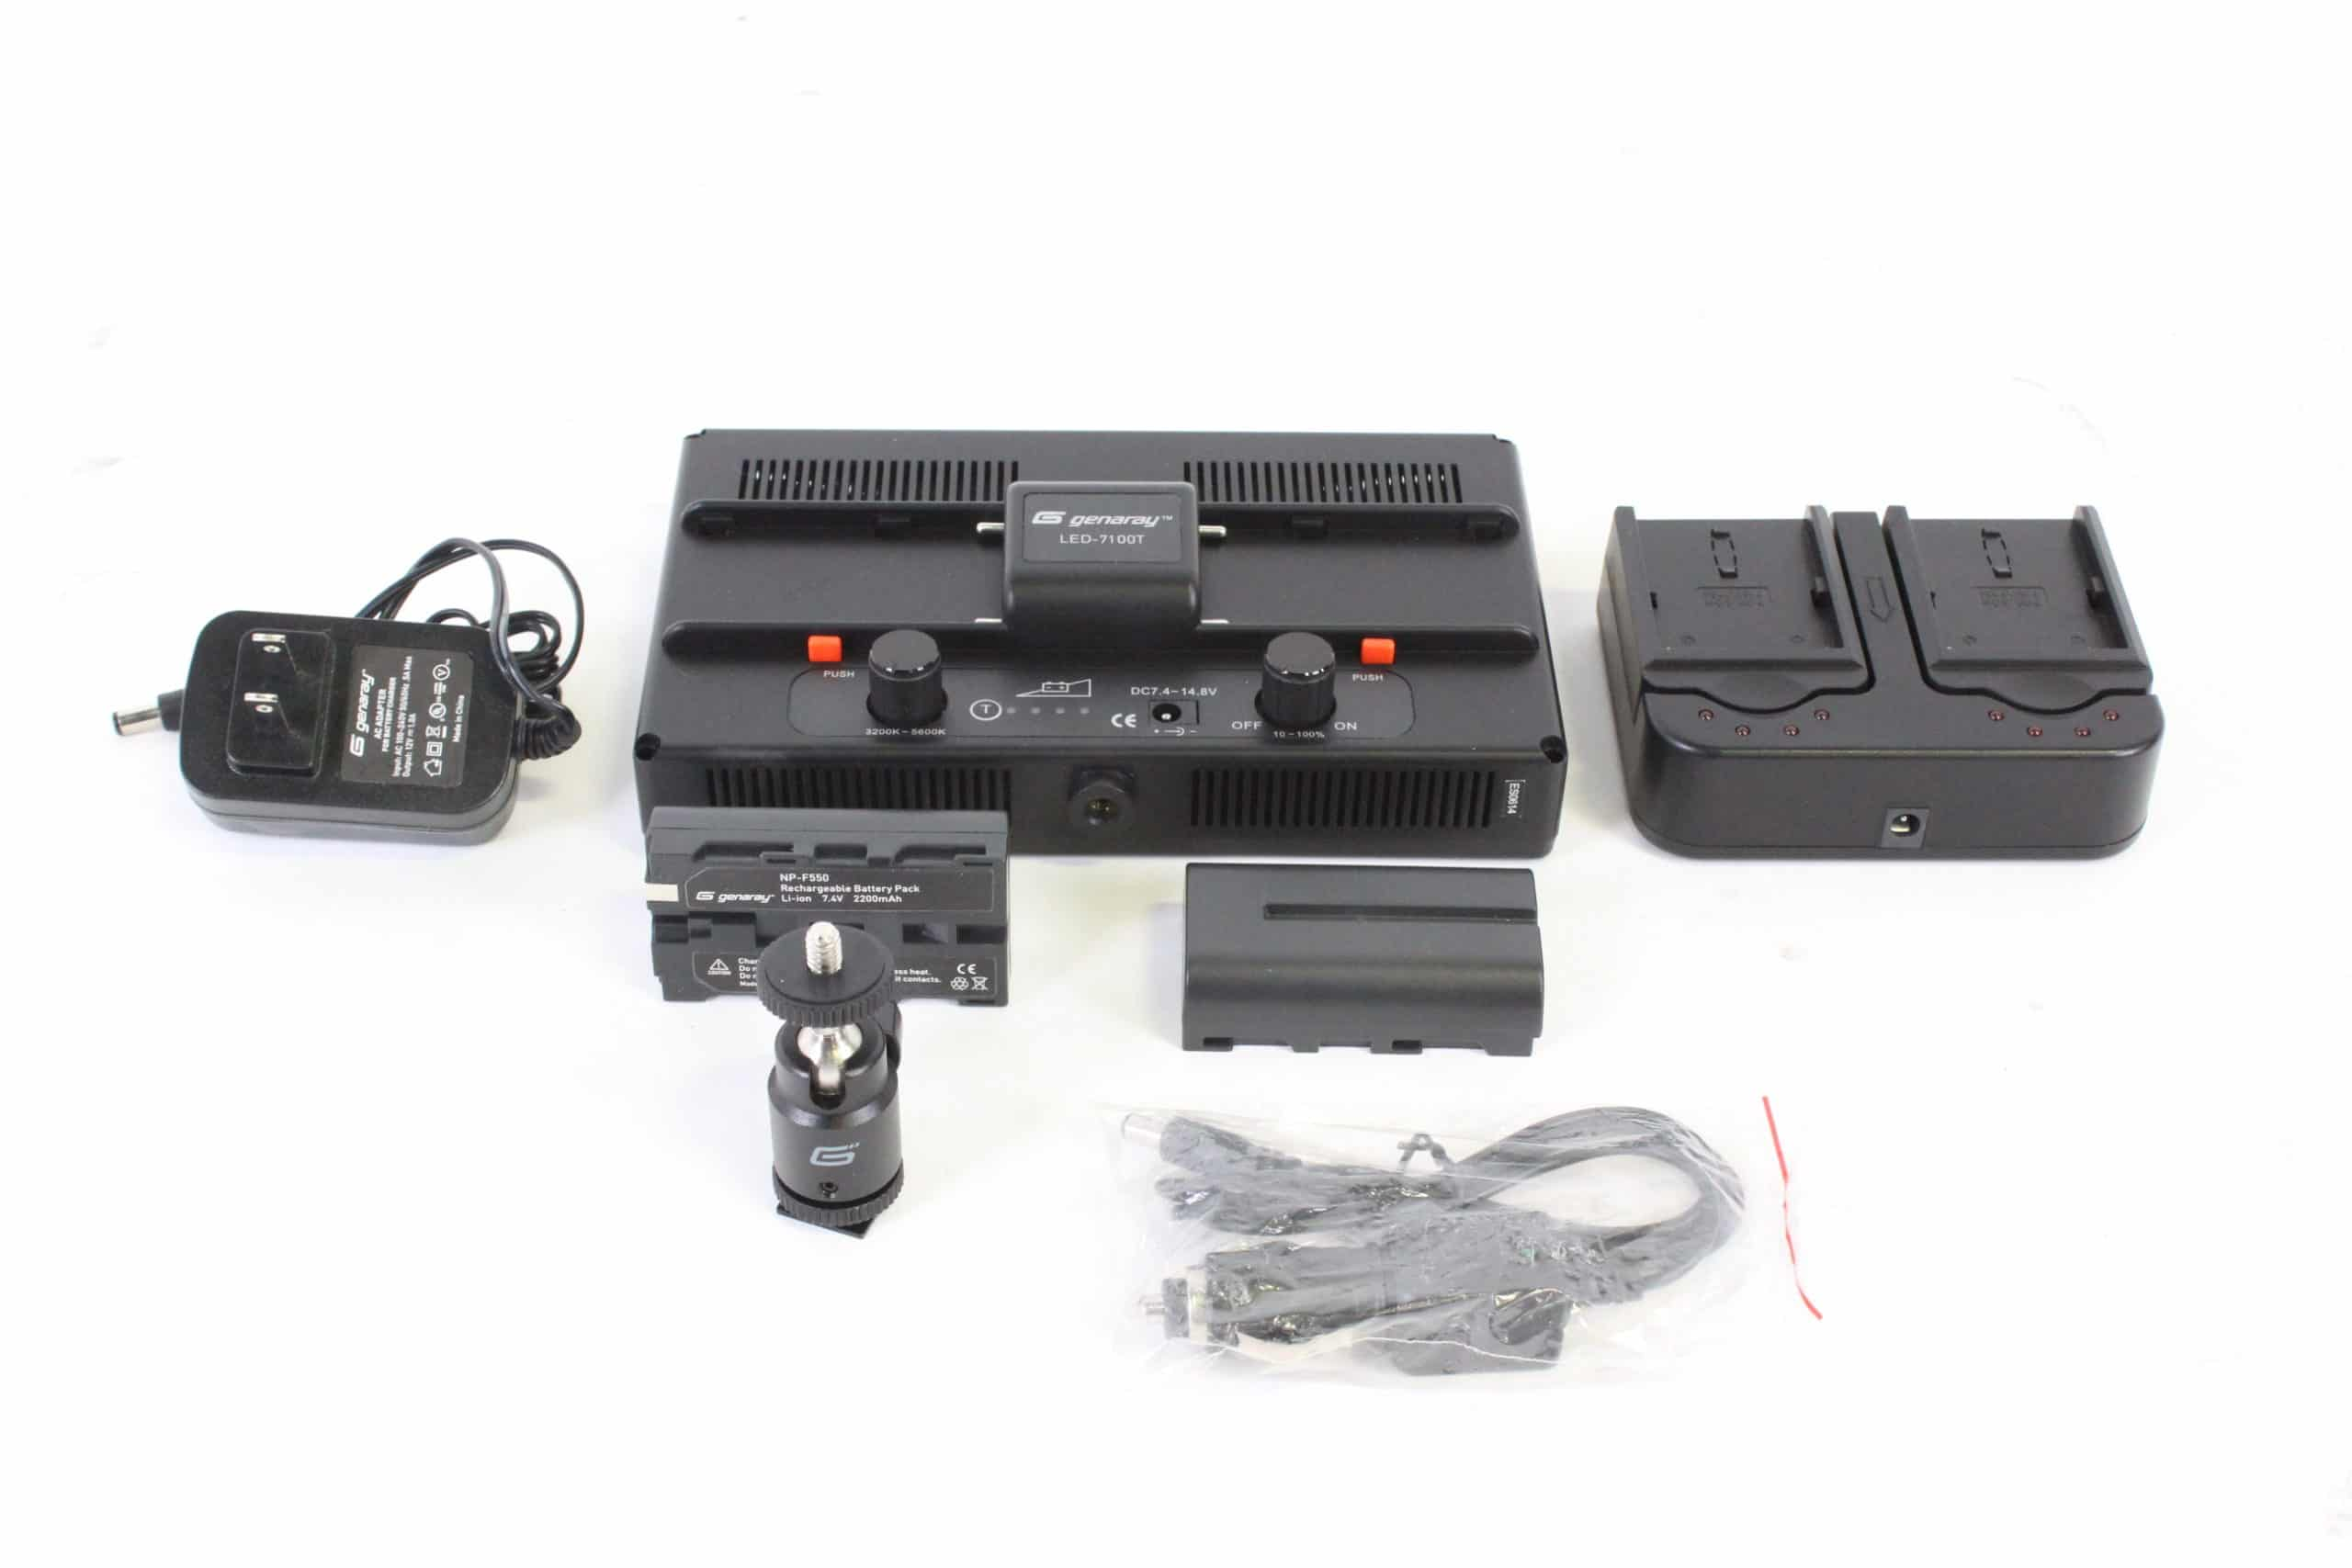 genaray-led-7100t-312-led-variable-color-on-camera-light-kit-w-2-np-f550-rechargeable-batteries-dual-battery-charger main